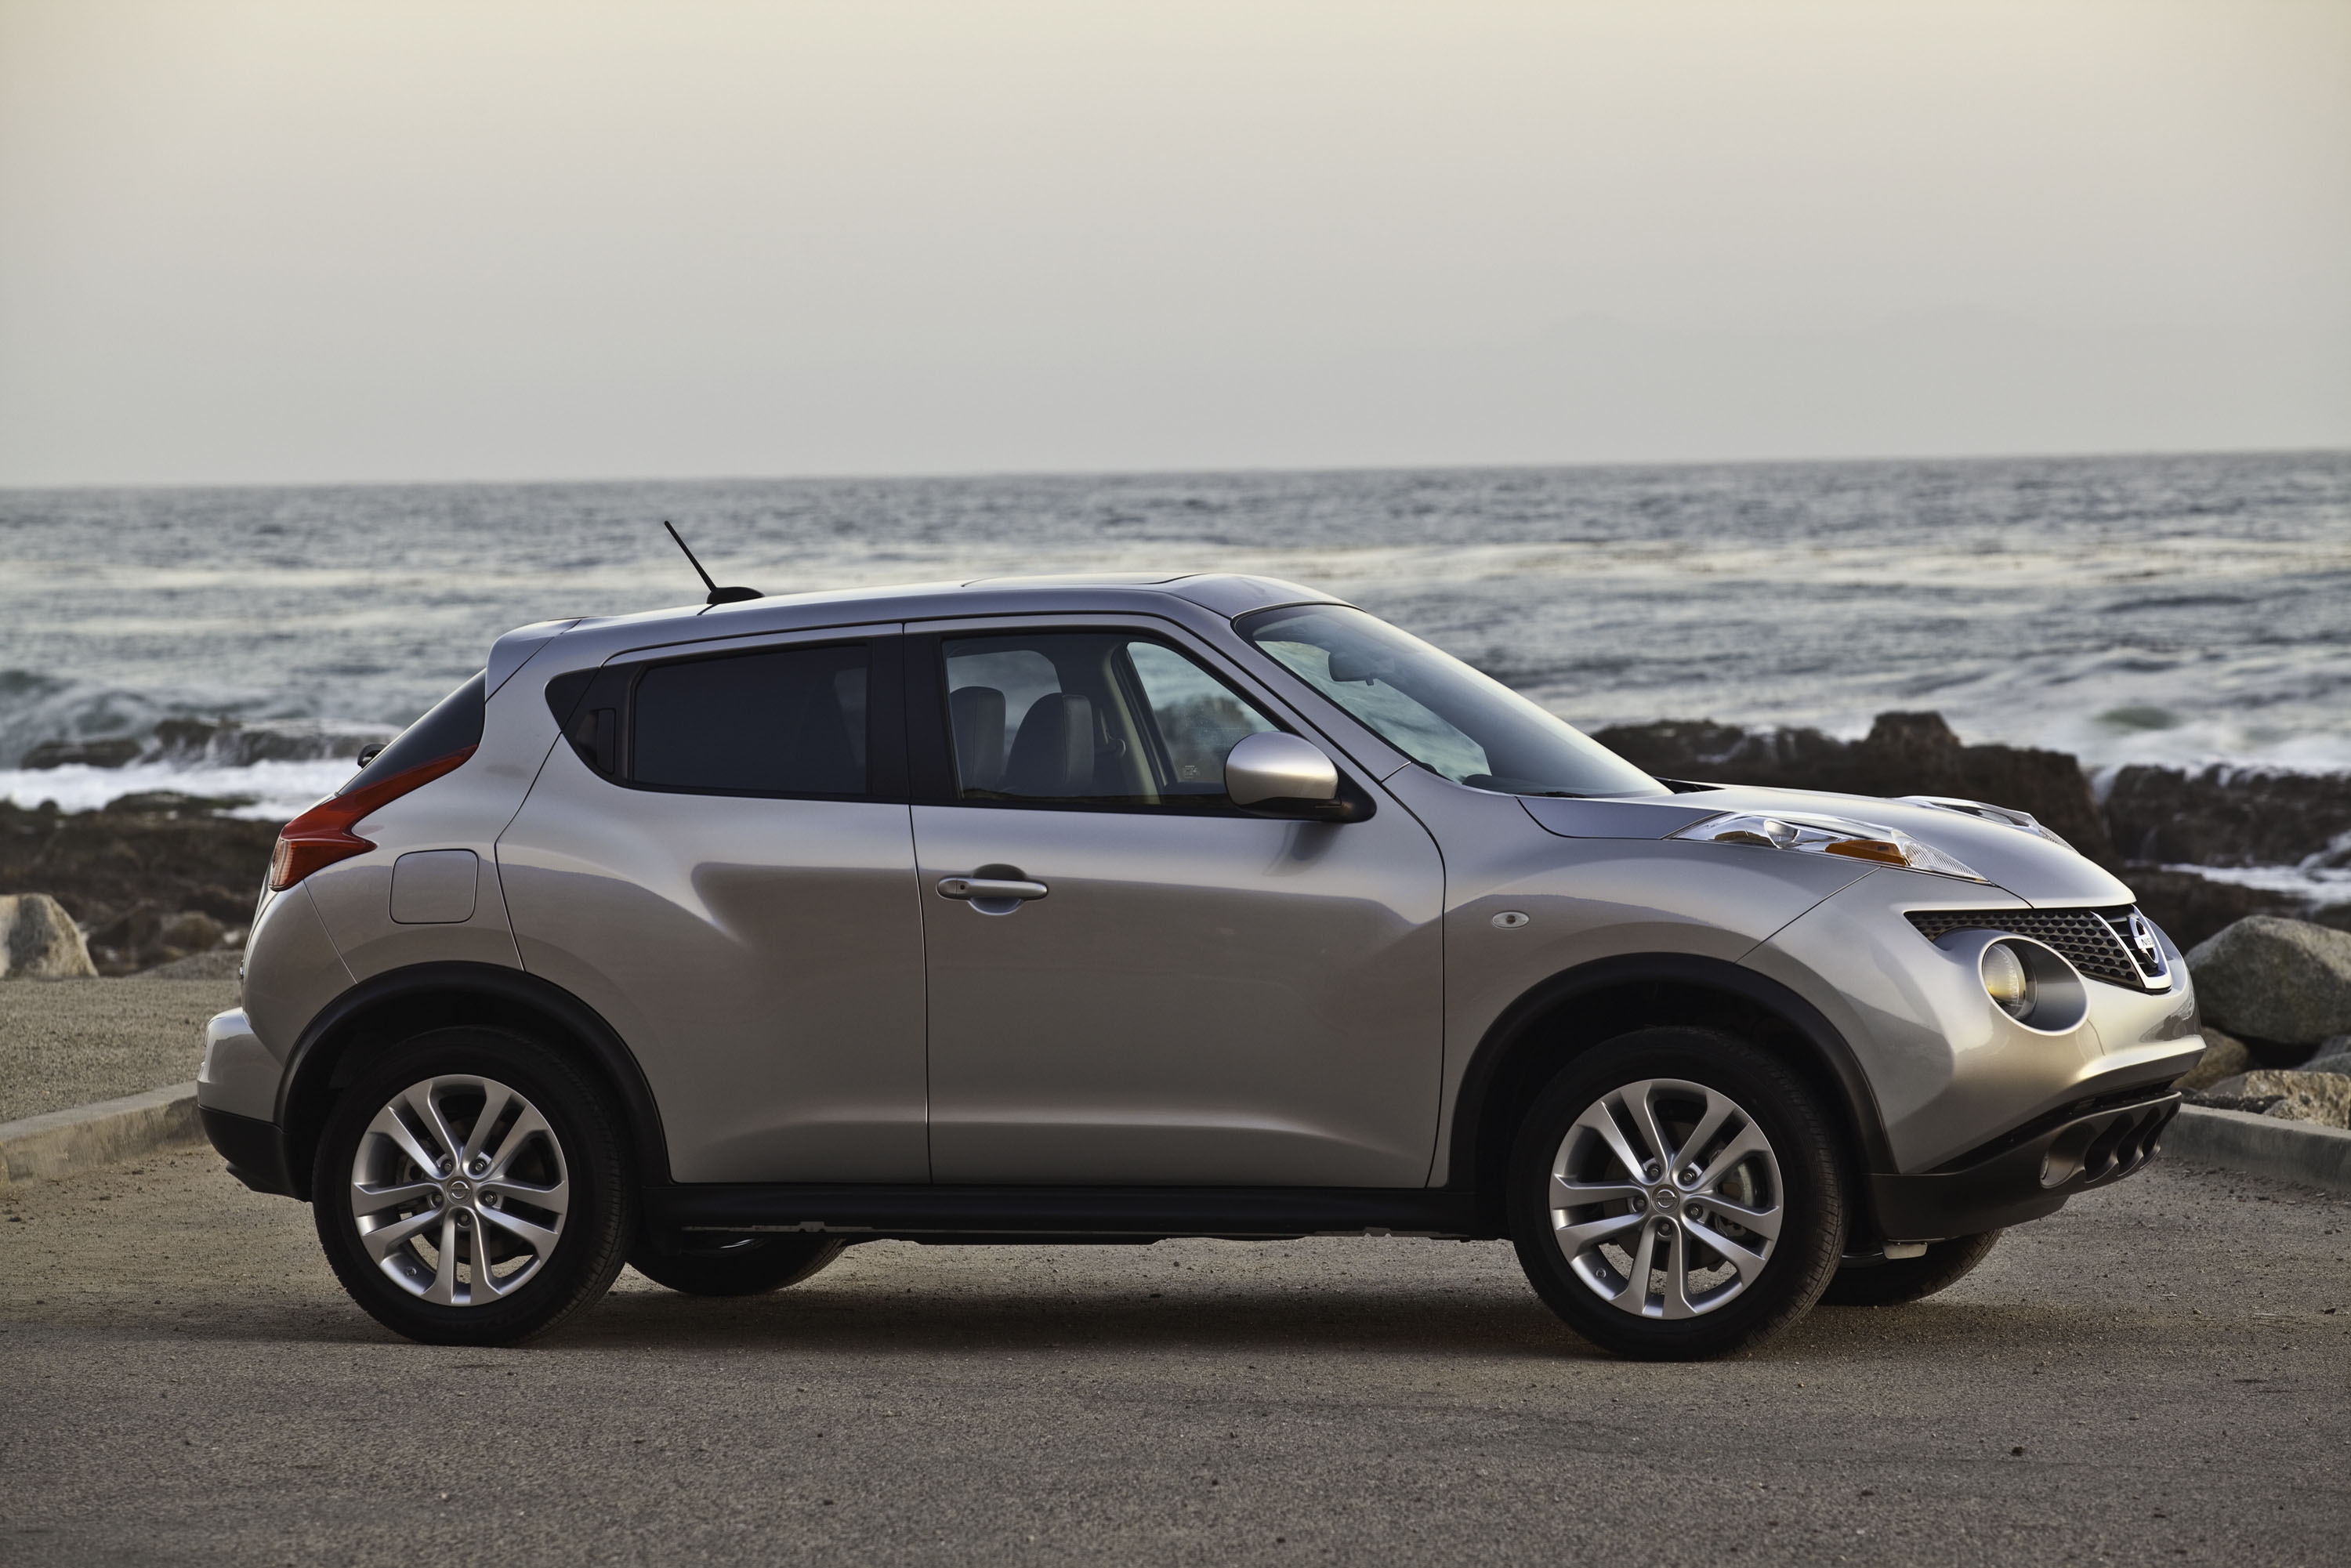 rapha nissan l driving juke road reviews created sl with suv test nissanjukefrontseats review